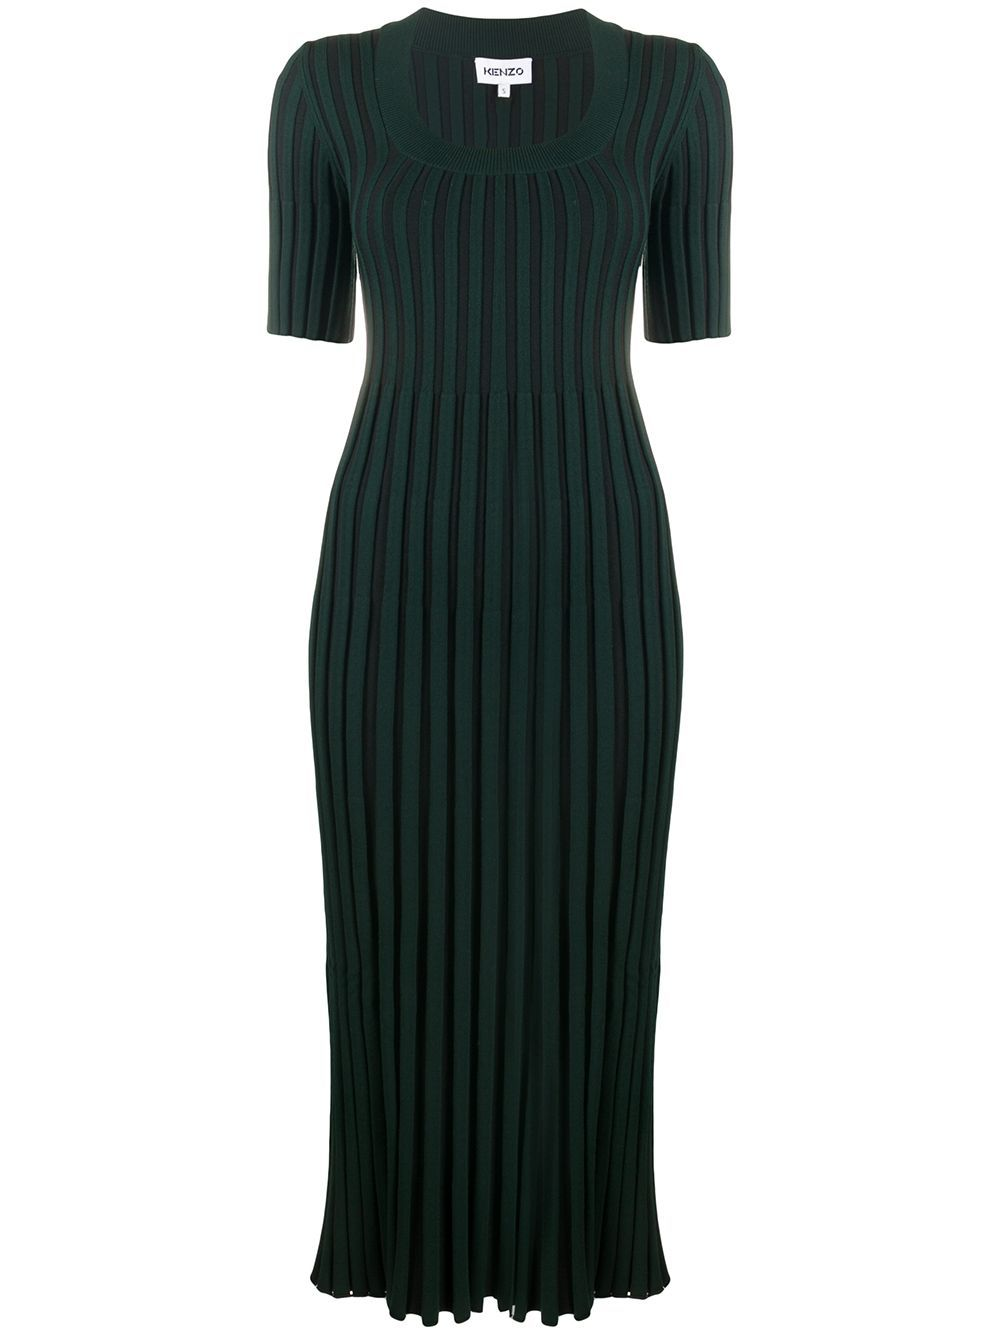 KENZO WOMEN Pleated Ribbed Dress Dark Green